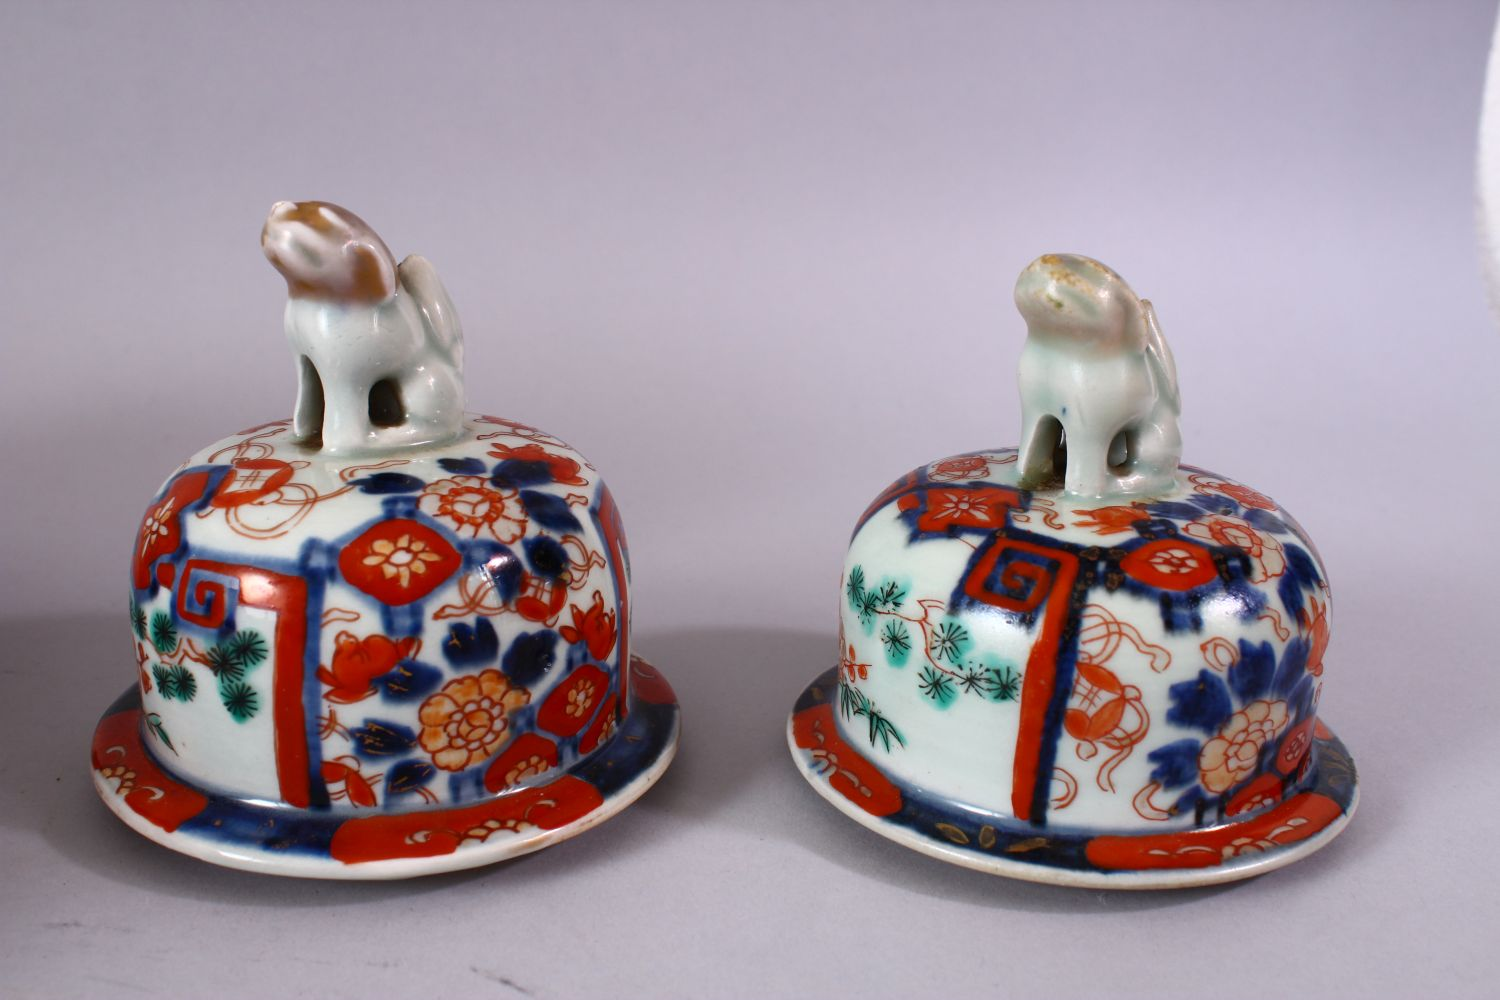 A PAIR OF MEIJI PERIOD IMARI VASES AND COVERS, with kylin finials, overall 30cm high. - Image 8 of 10